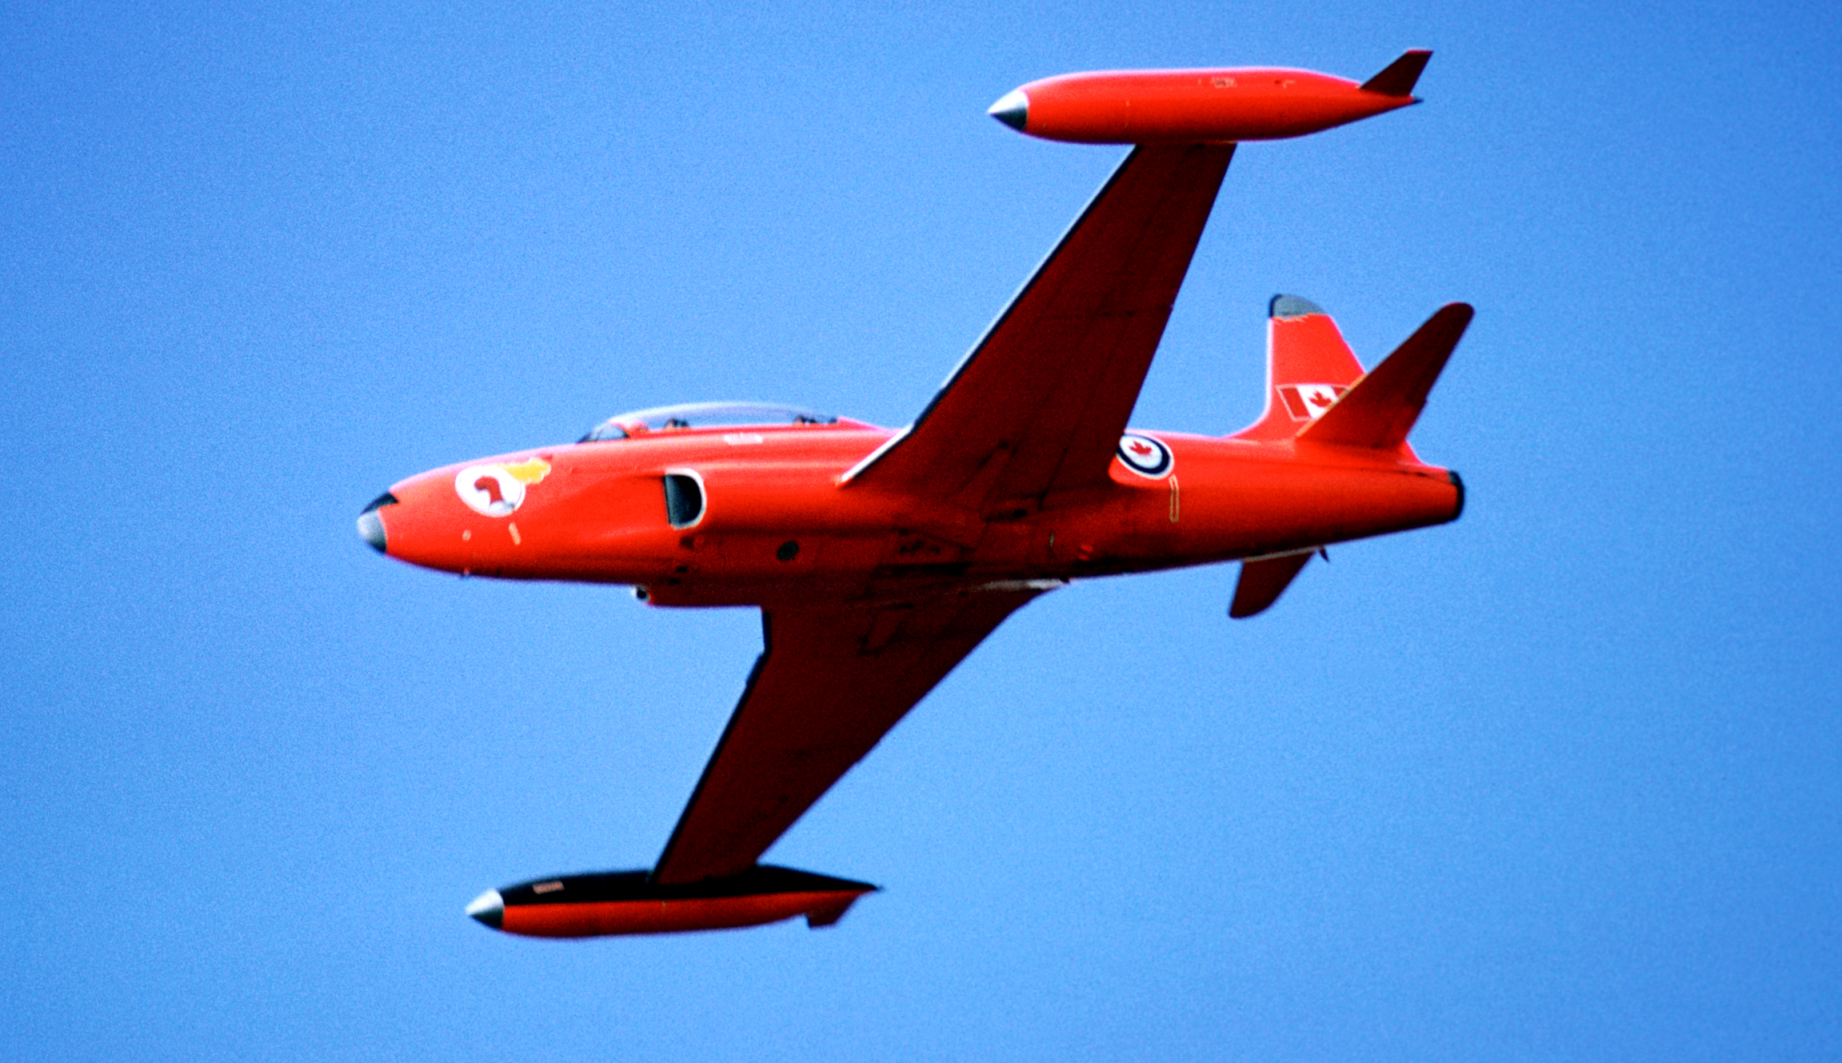 A red aircraft in flight.